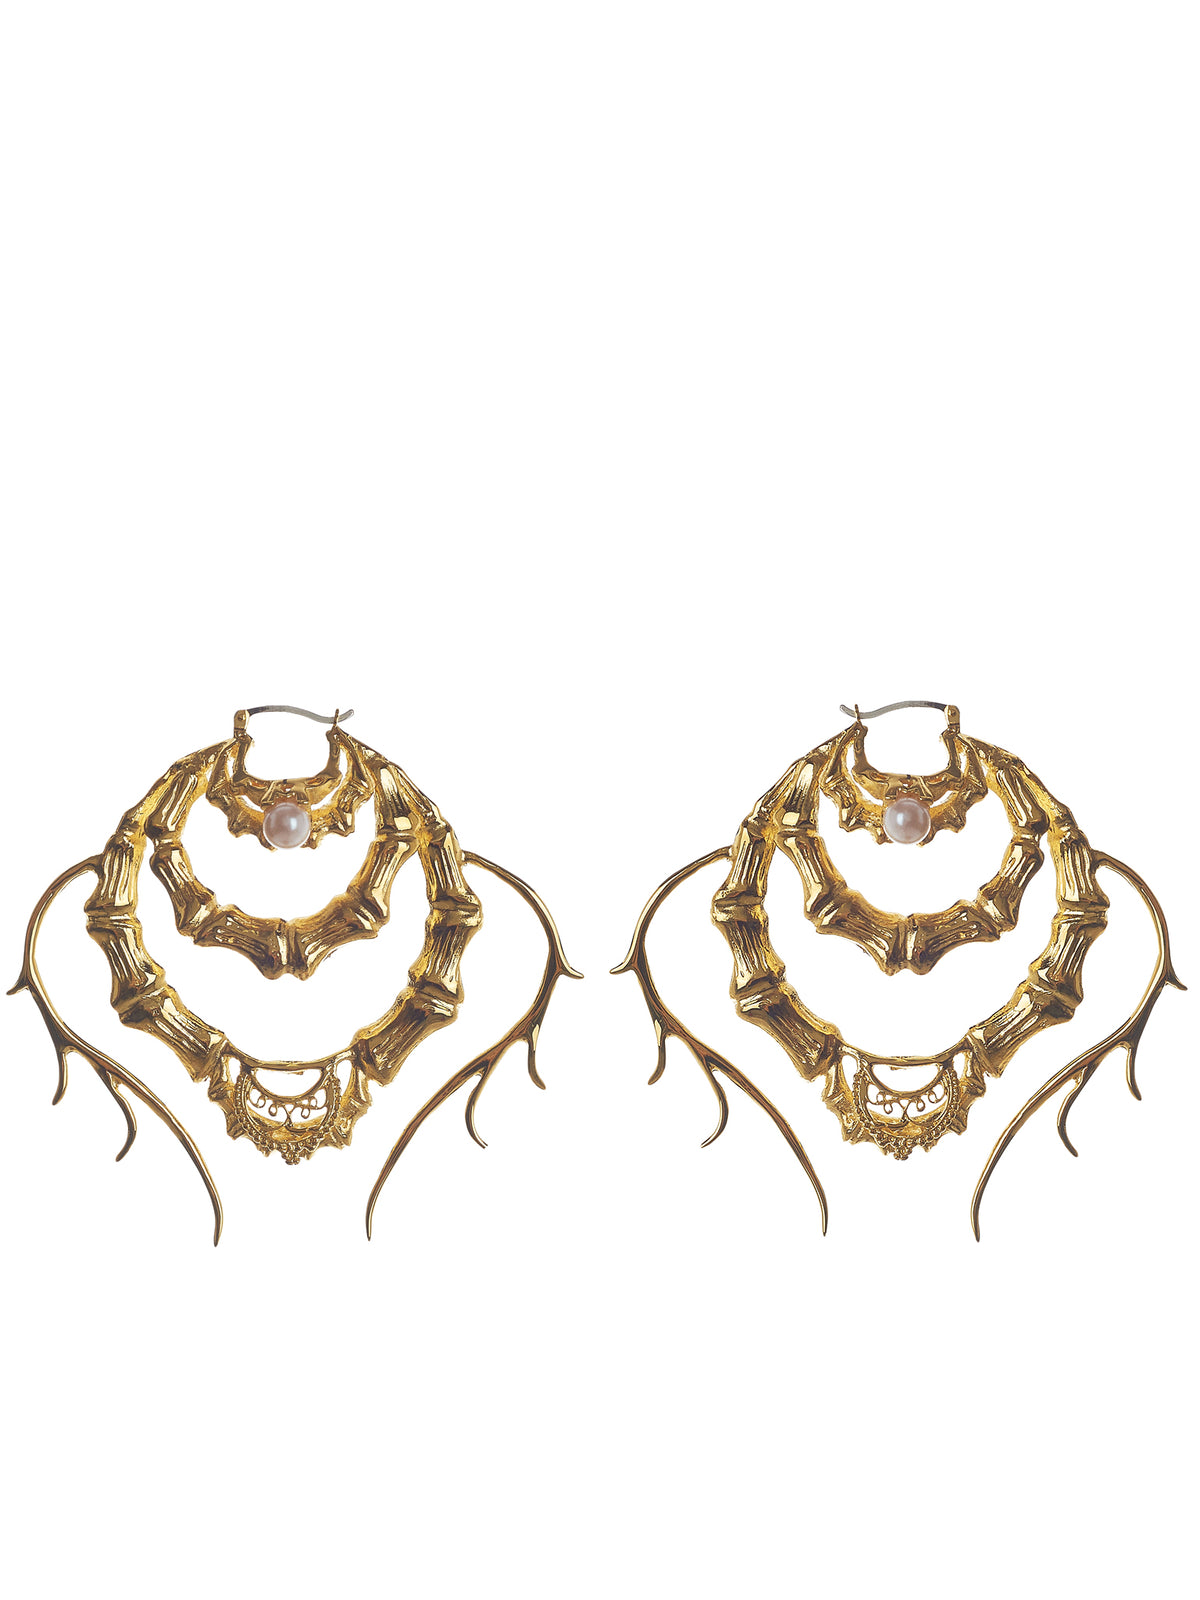 'The Savage Statement' Bamboo Earrings (MESSAW1701-GOLD-PLATING)